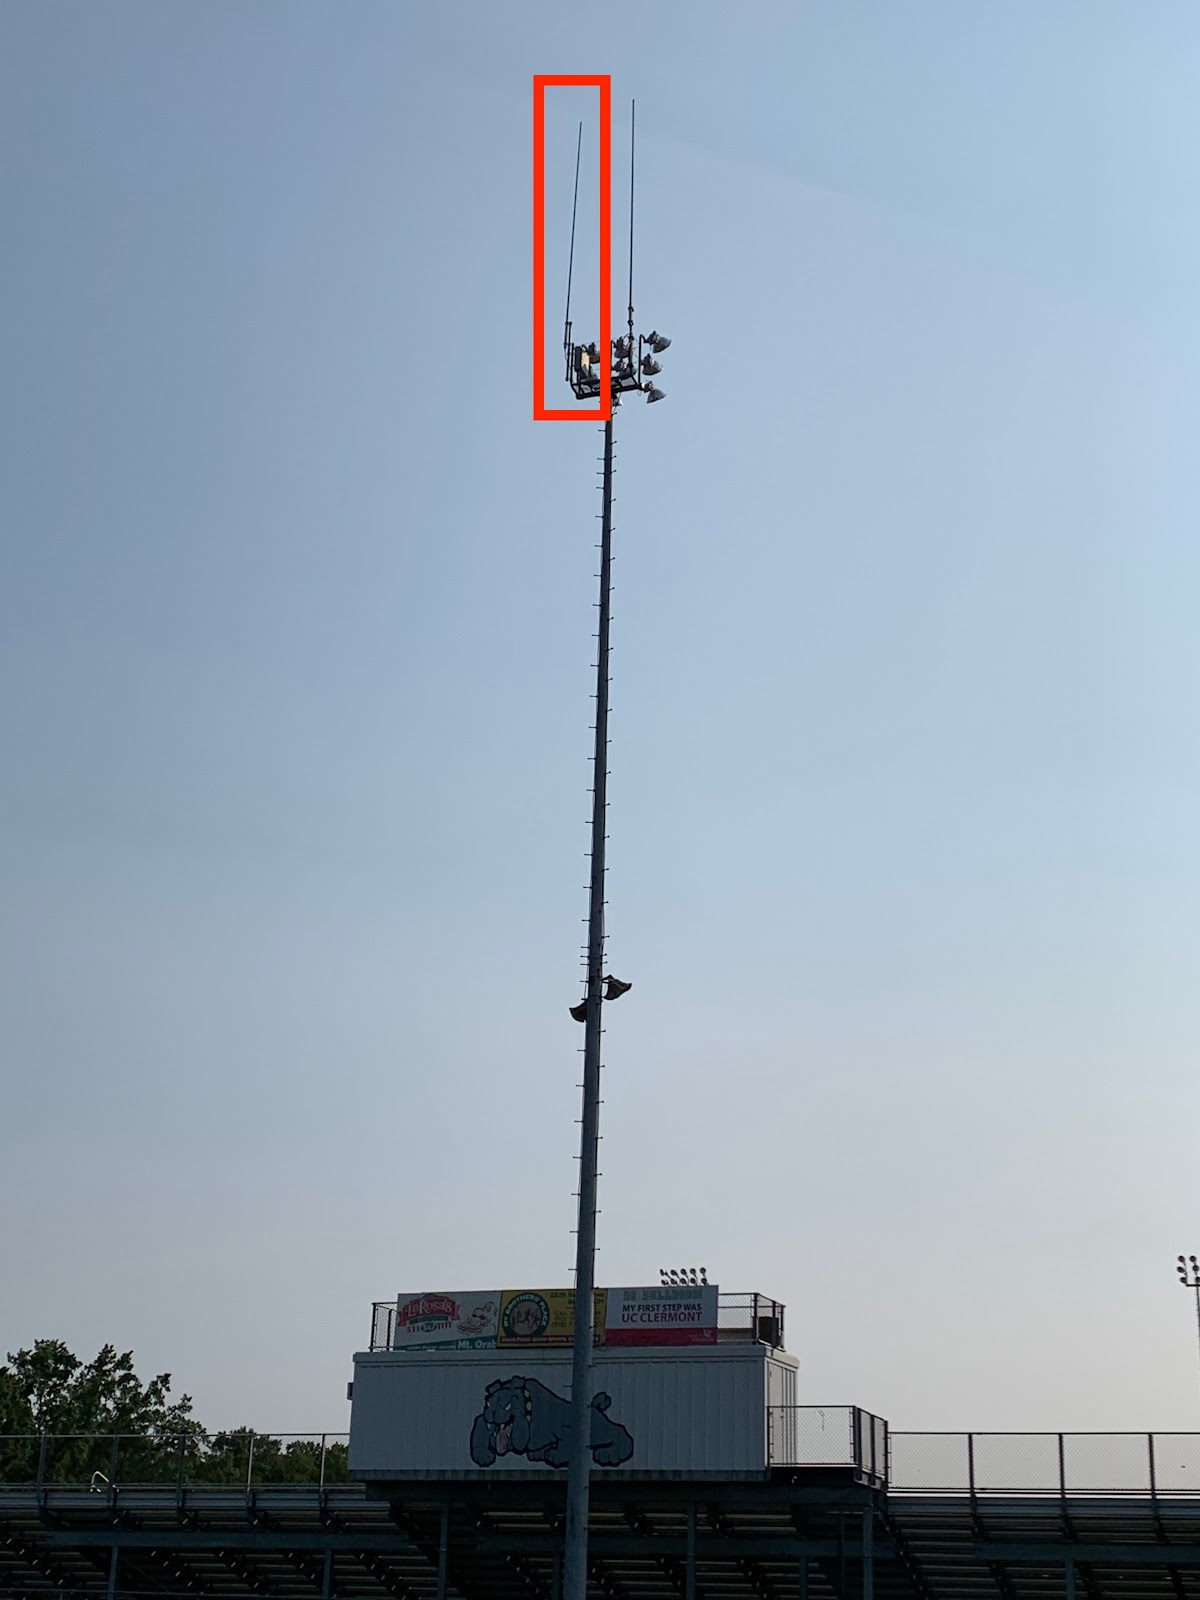 highlighted red box area shows where the second antenna is located for the new District emergency radio system.